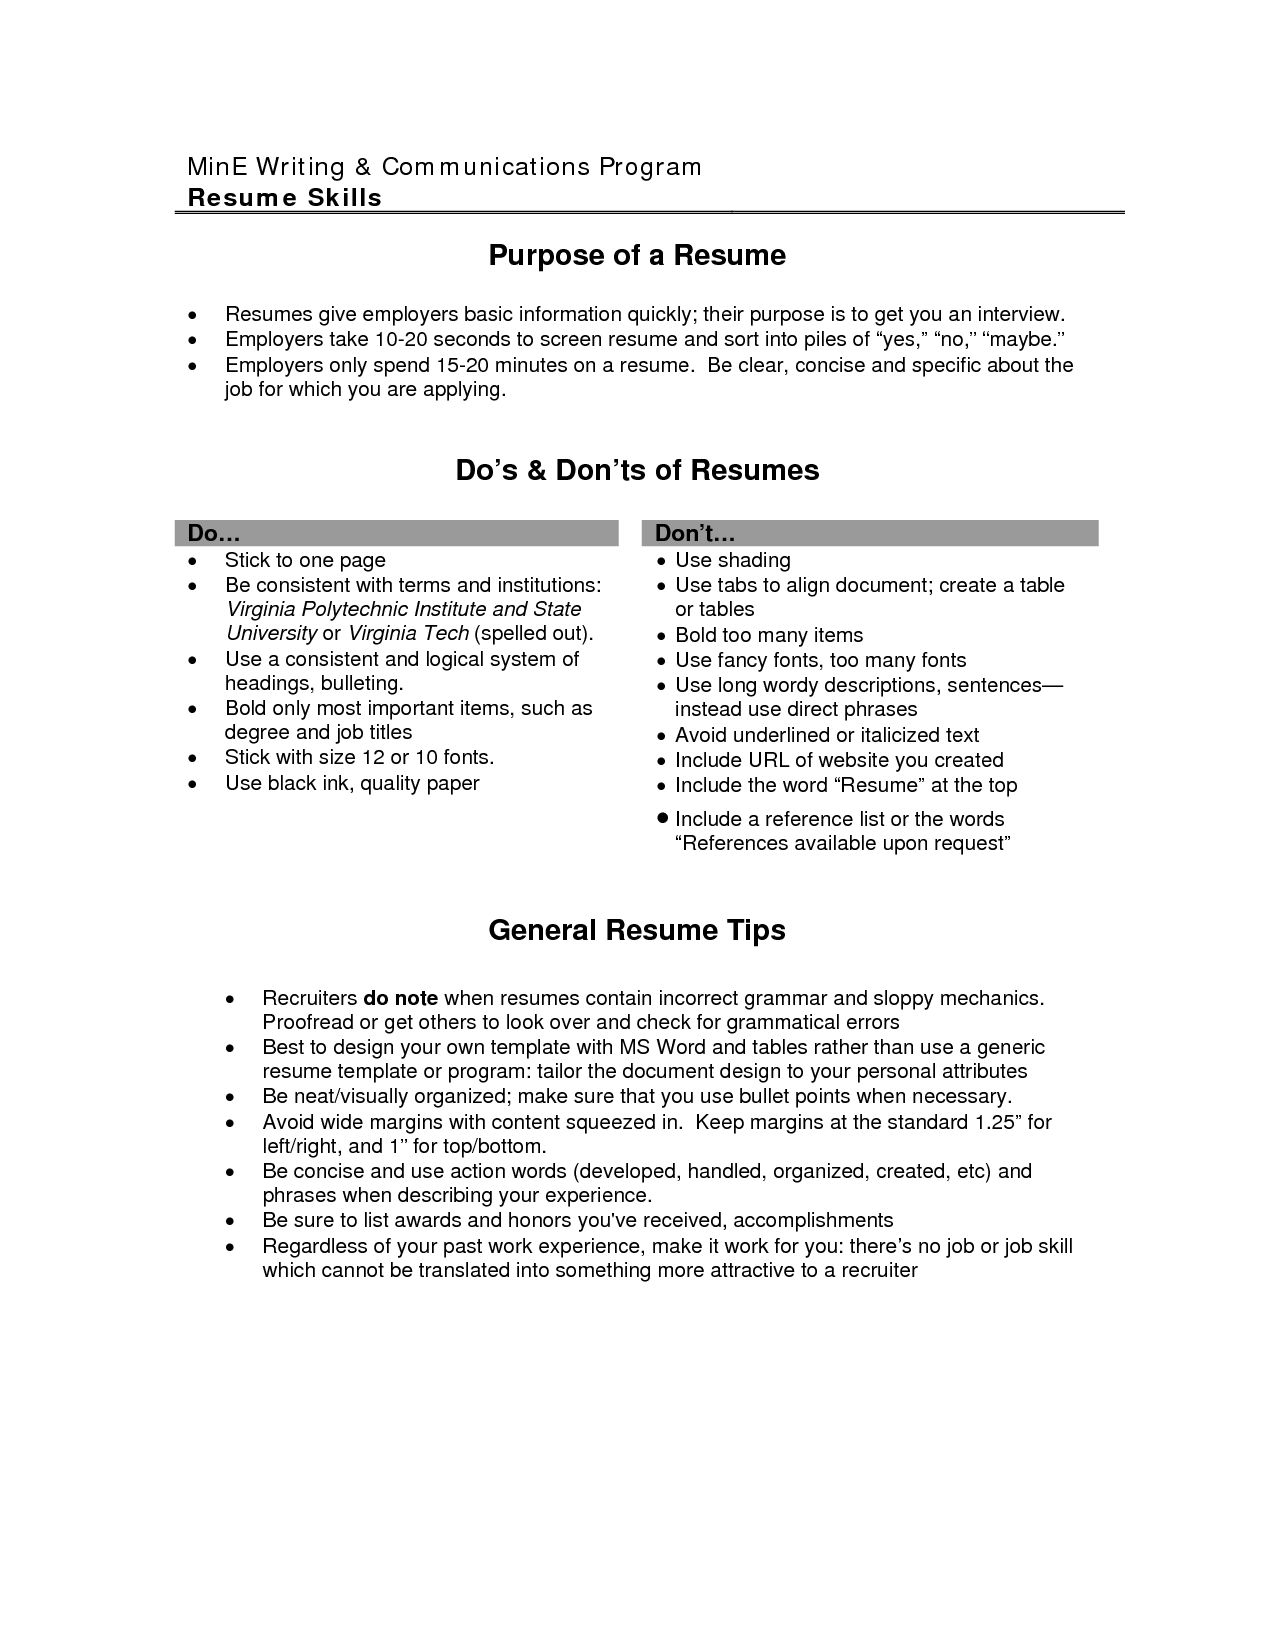 Resume Objectives Samples Top Resume Skills Entry Level Template The Create Your Building